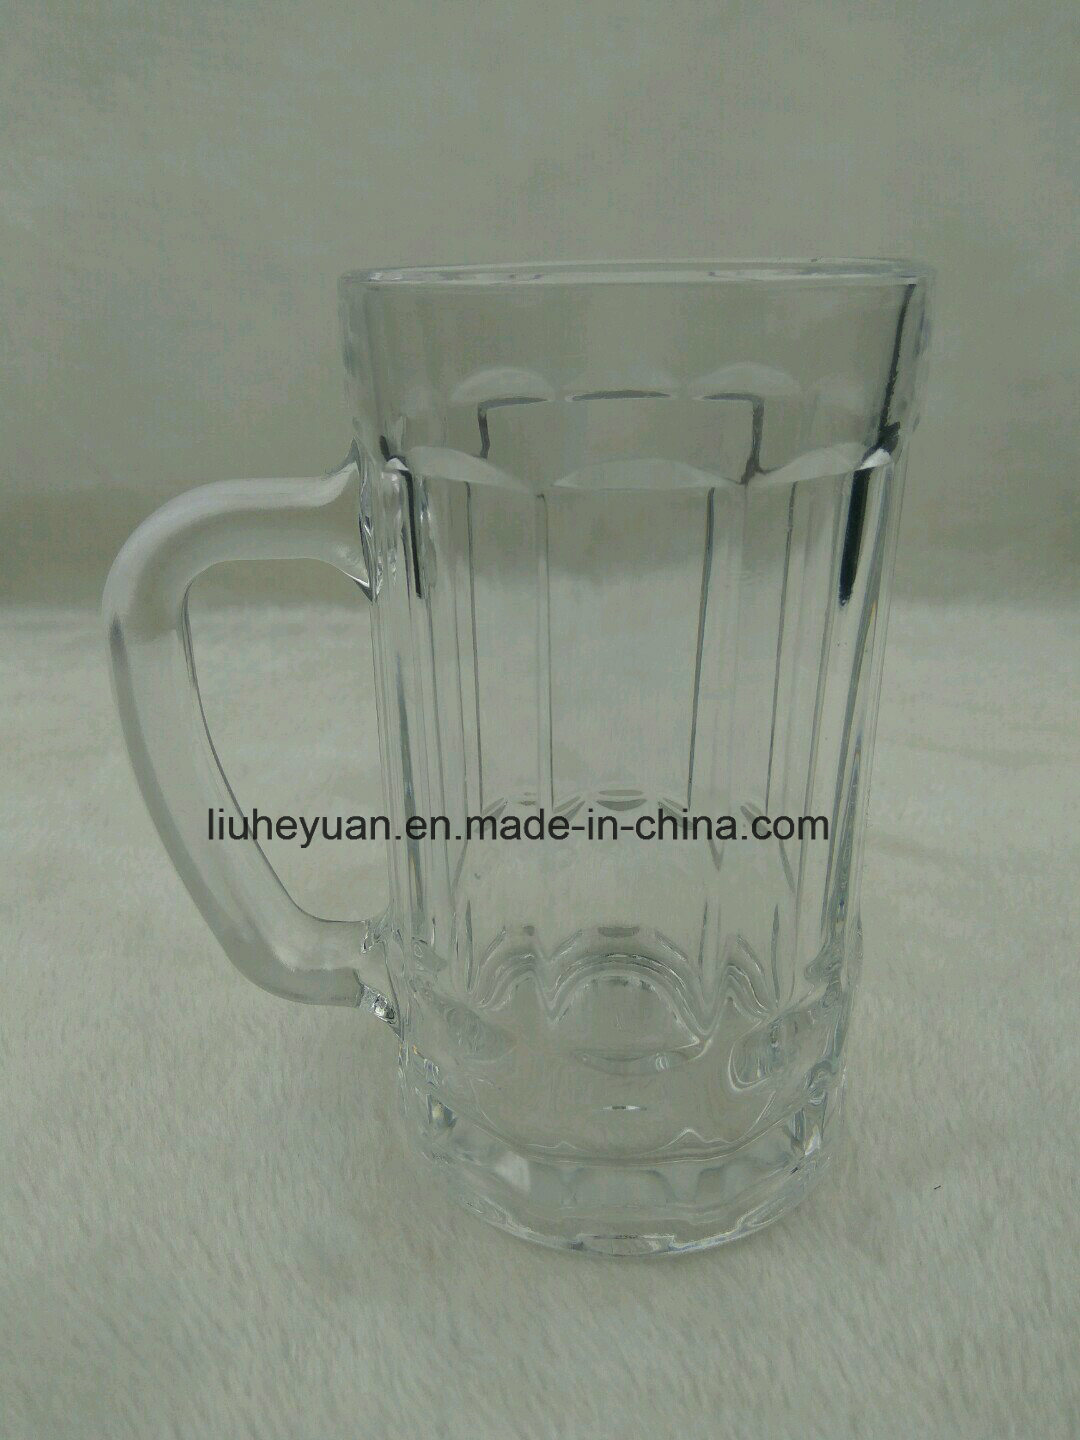 375ml High Quality, High Clear, Beer Glass Cup with Handle, Water or Tea Glass Cup